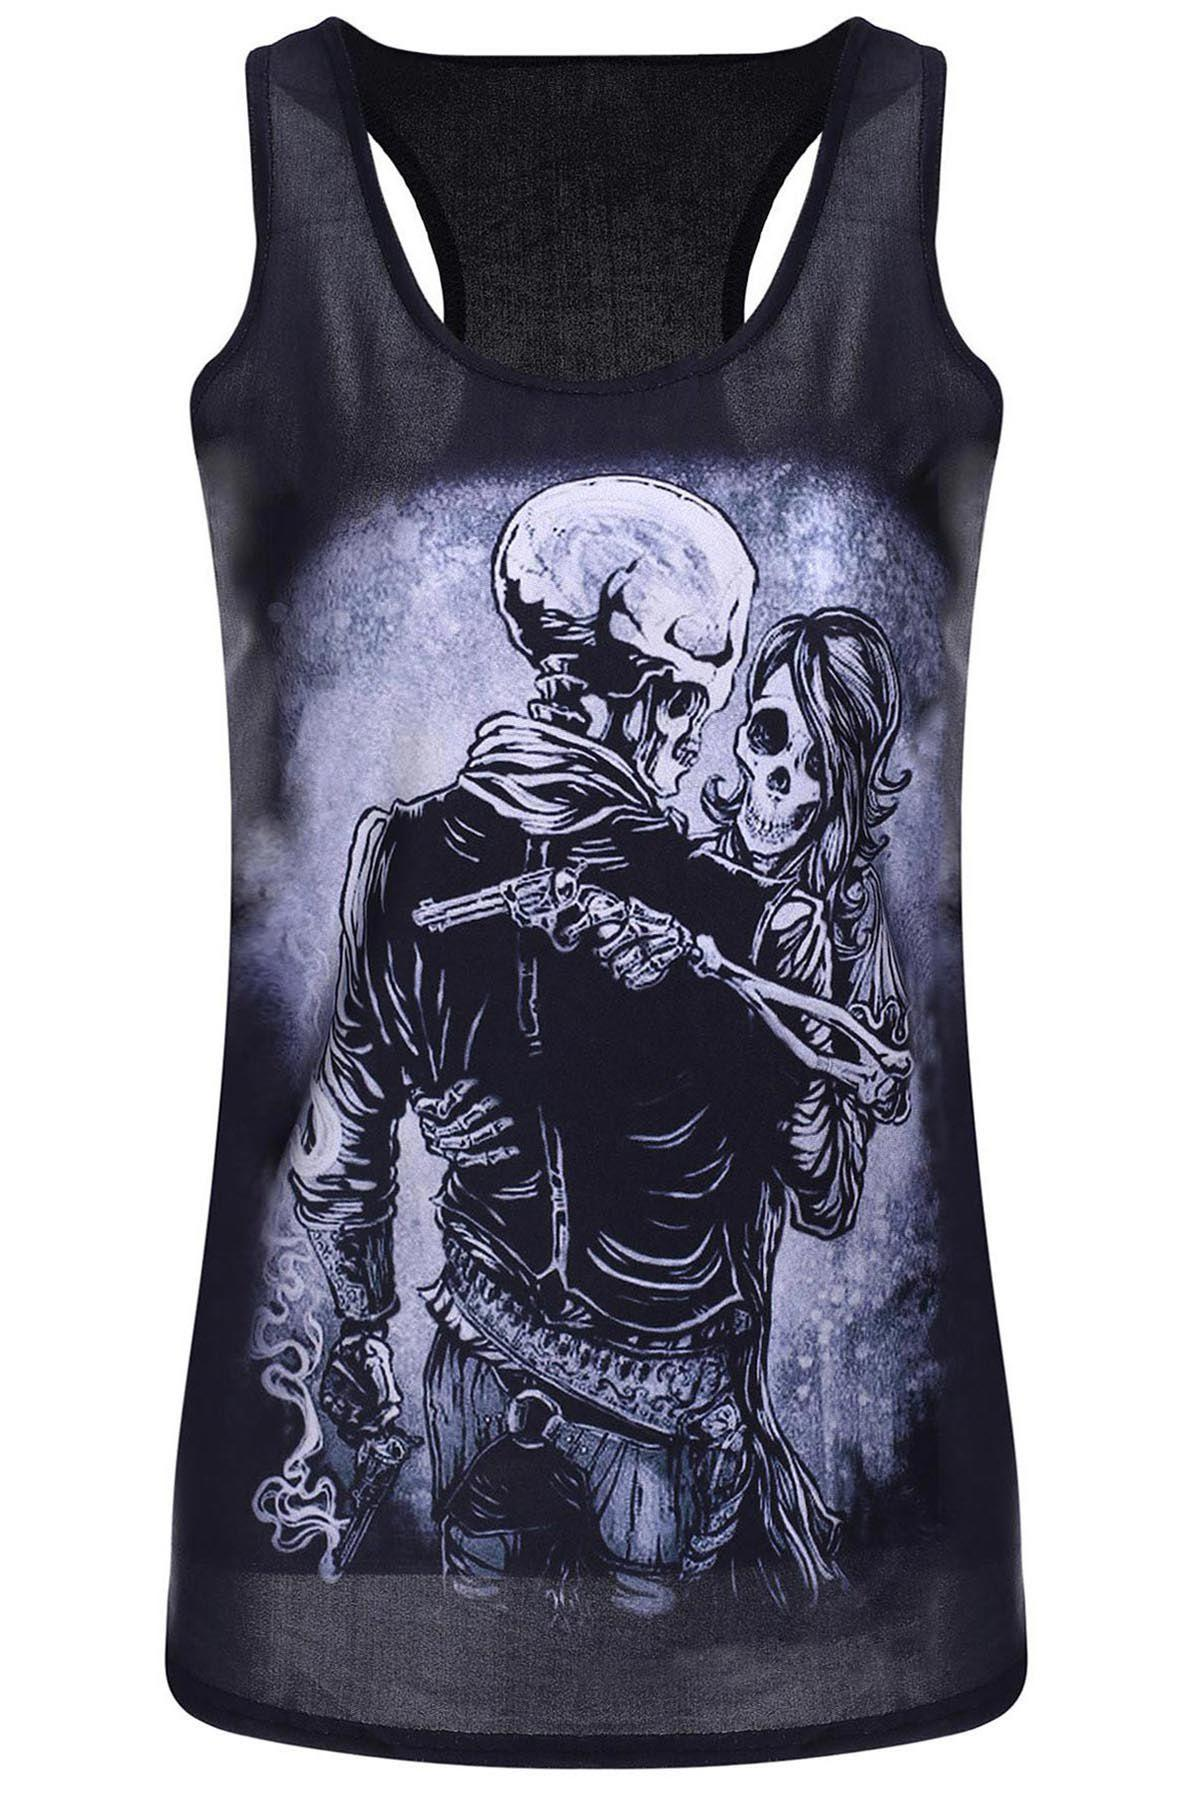 Sleeveless U Neck Skull Print Tank Top - BLACK ONE SIZE(FIT SIZE XS TO M)